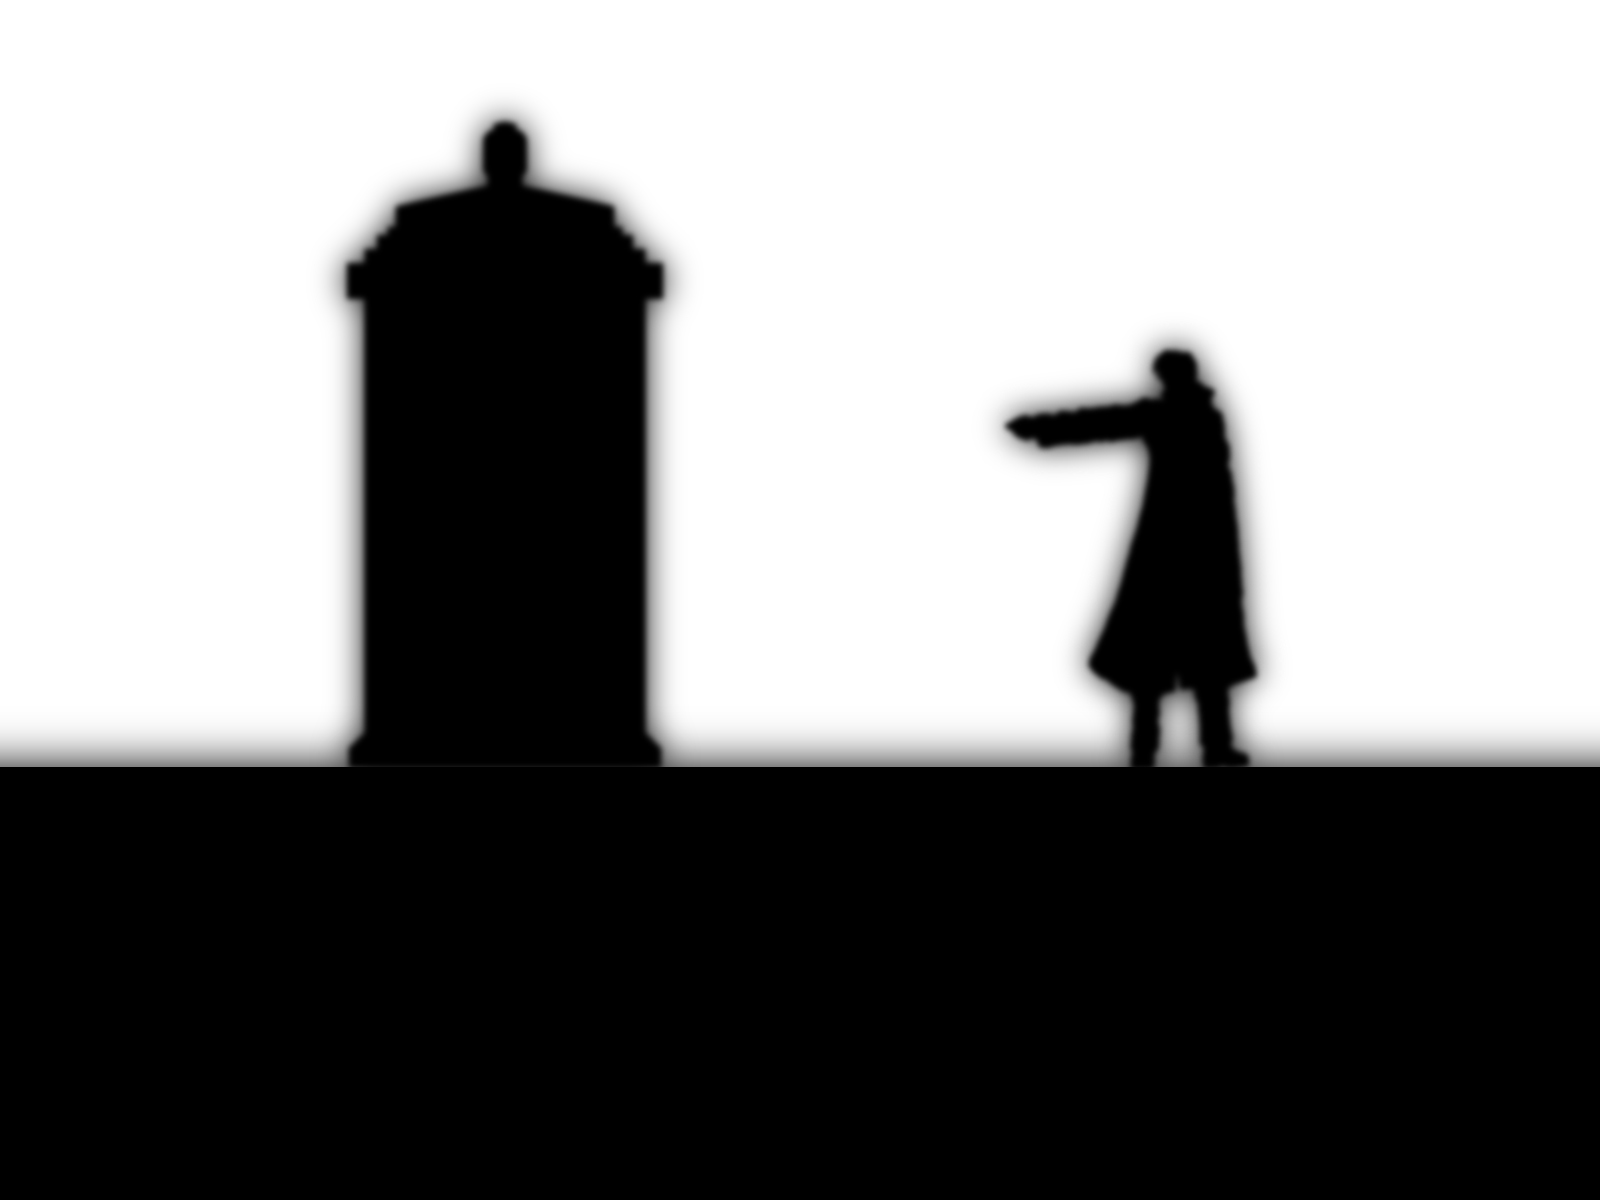 1600x1200 Tenth Doctor, Doctor Who, Silhouette, Monochrome Wallpapers Hd